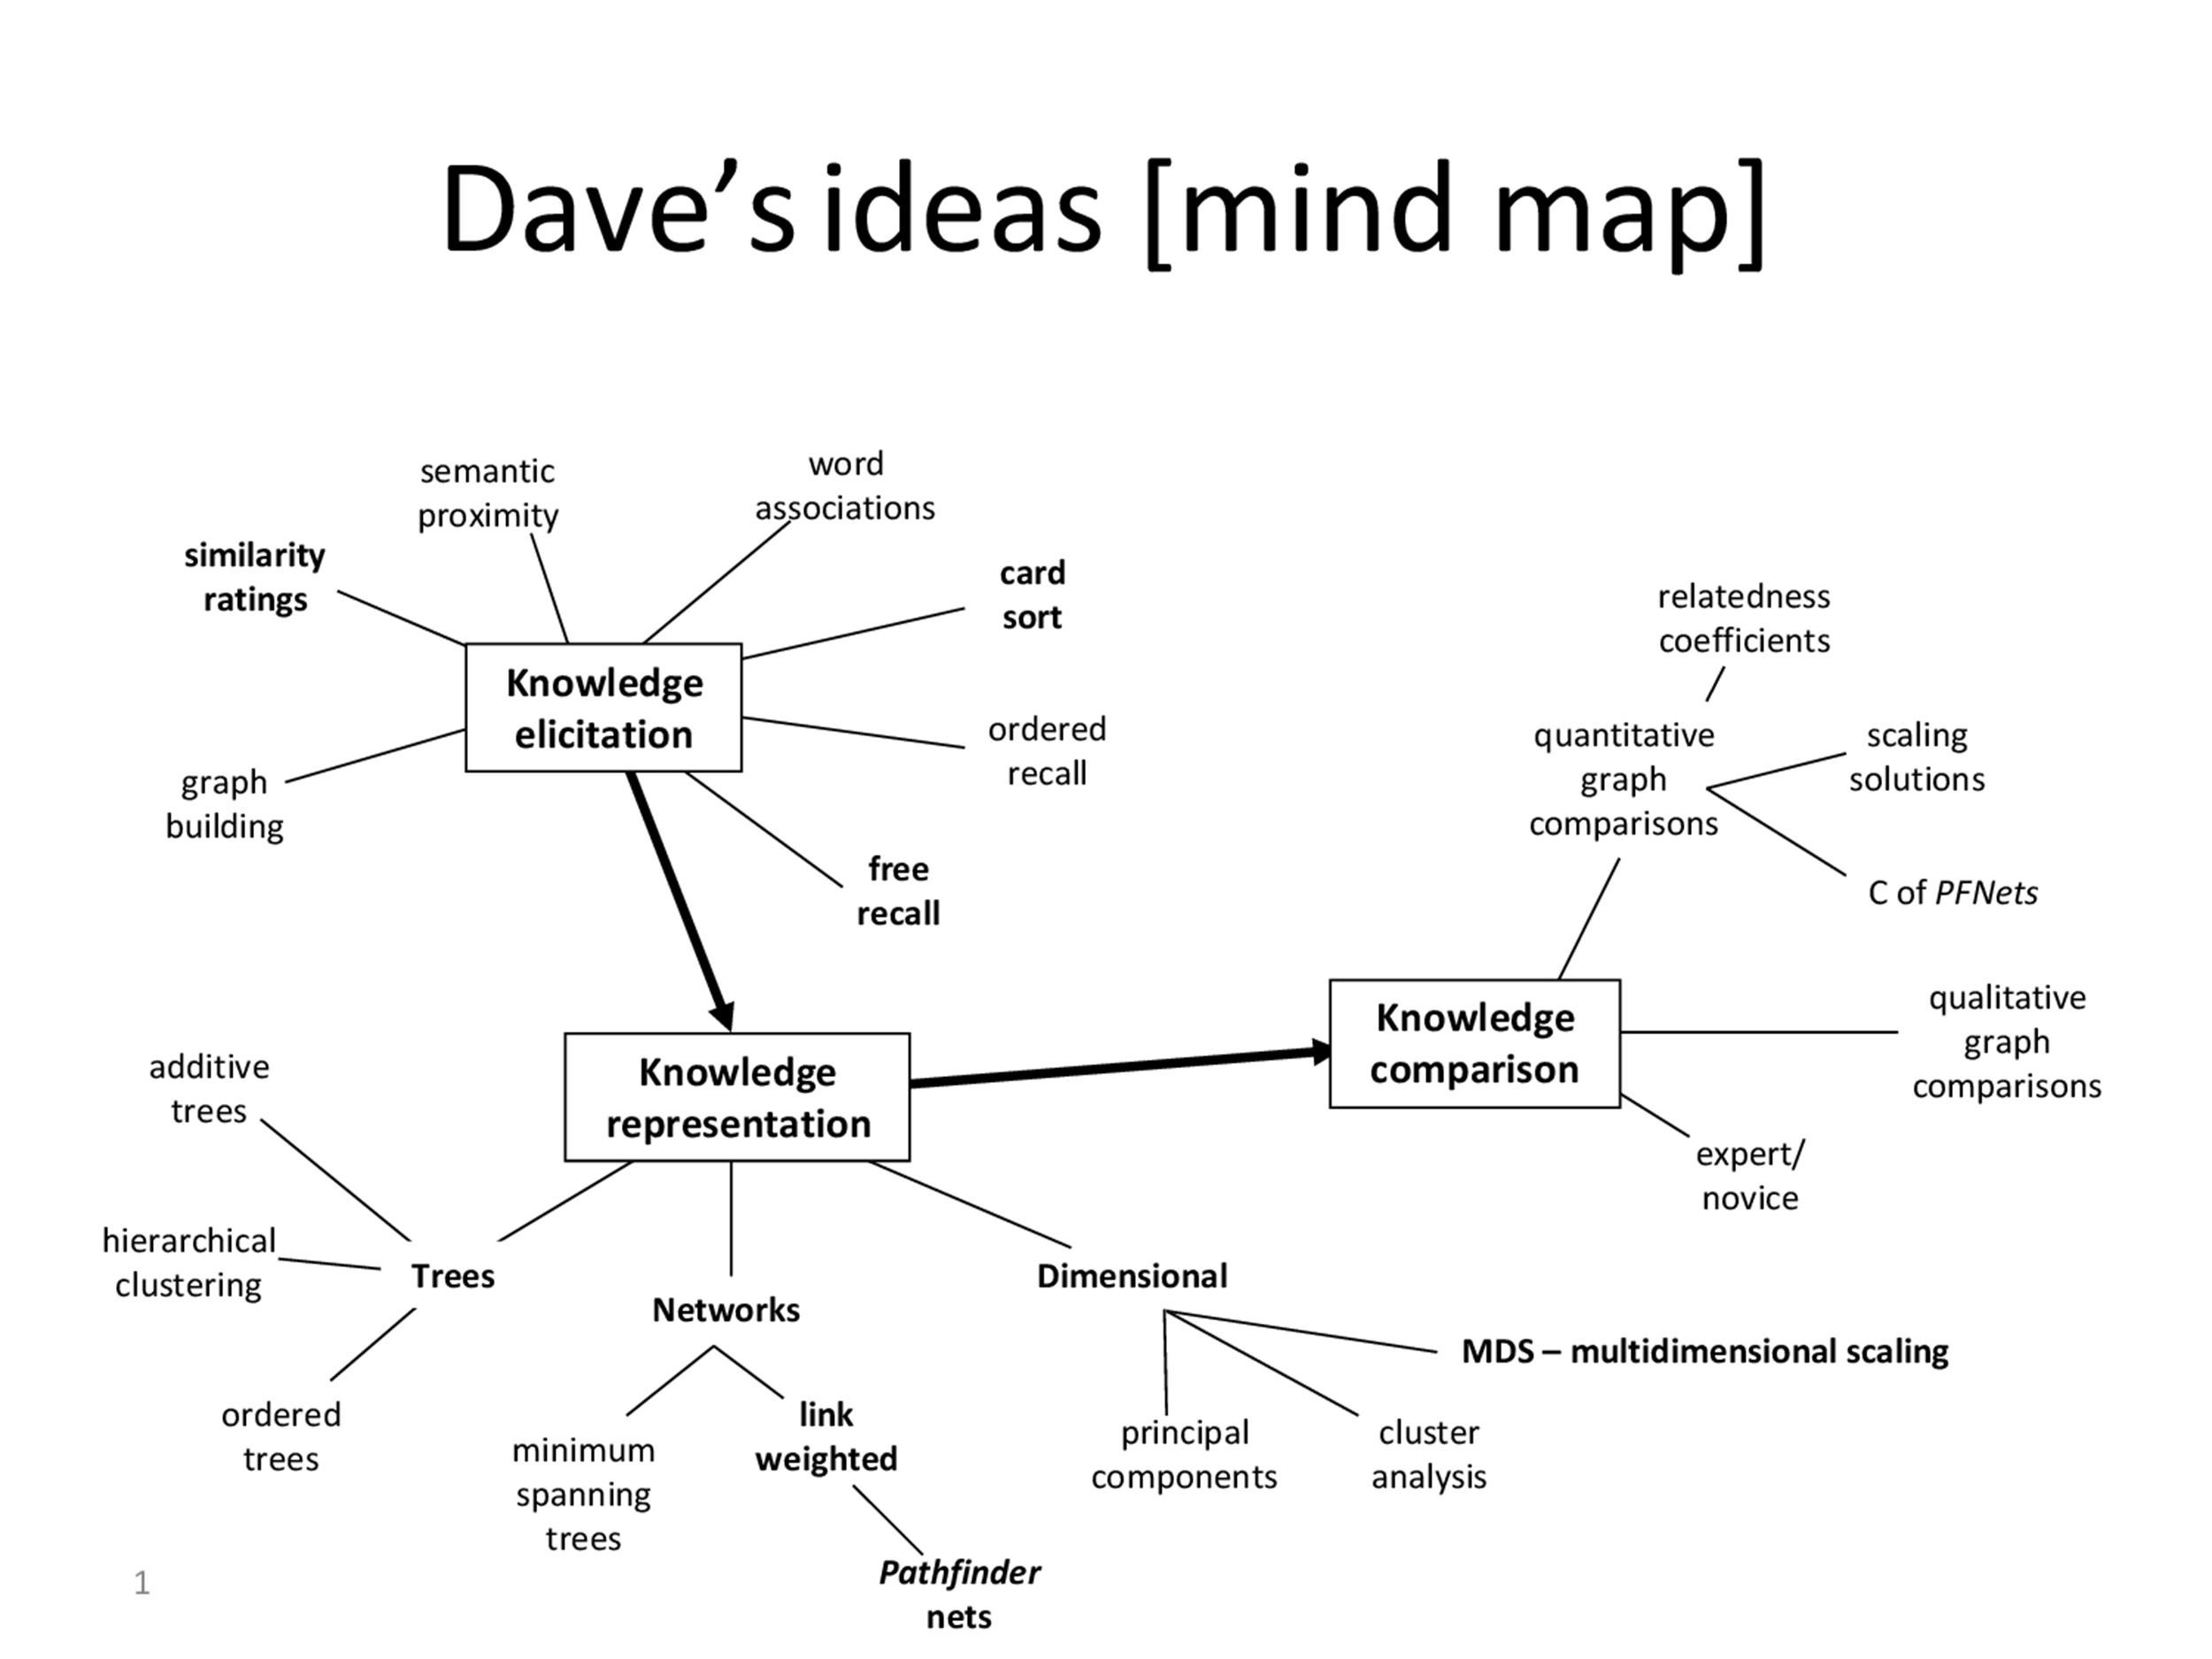 35 Free Mind Map Templates  Examples (Word + PowerPoint) ᐅ